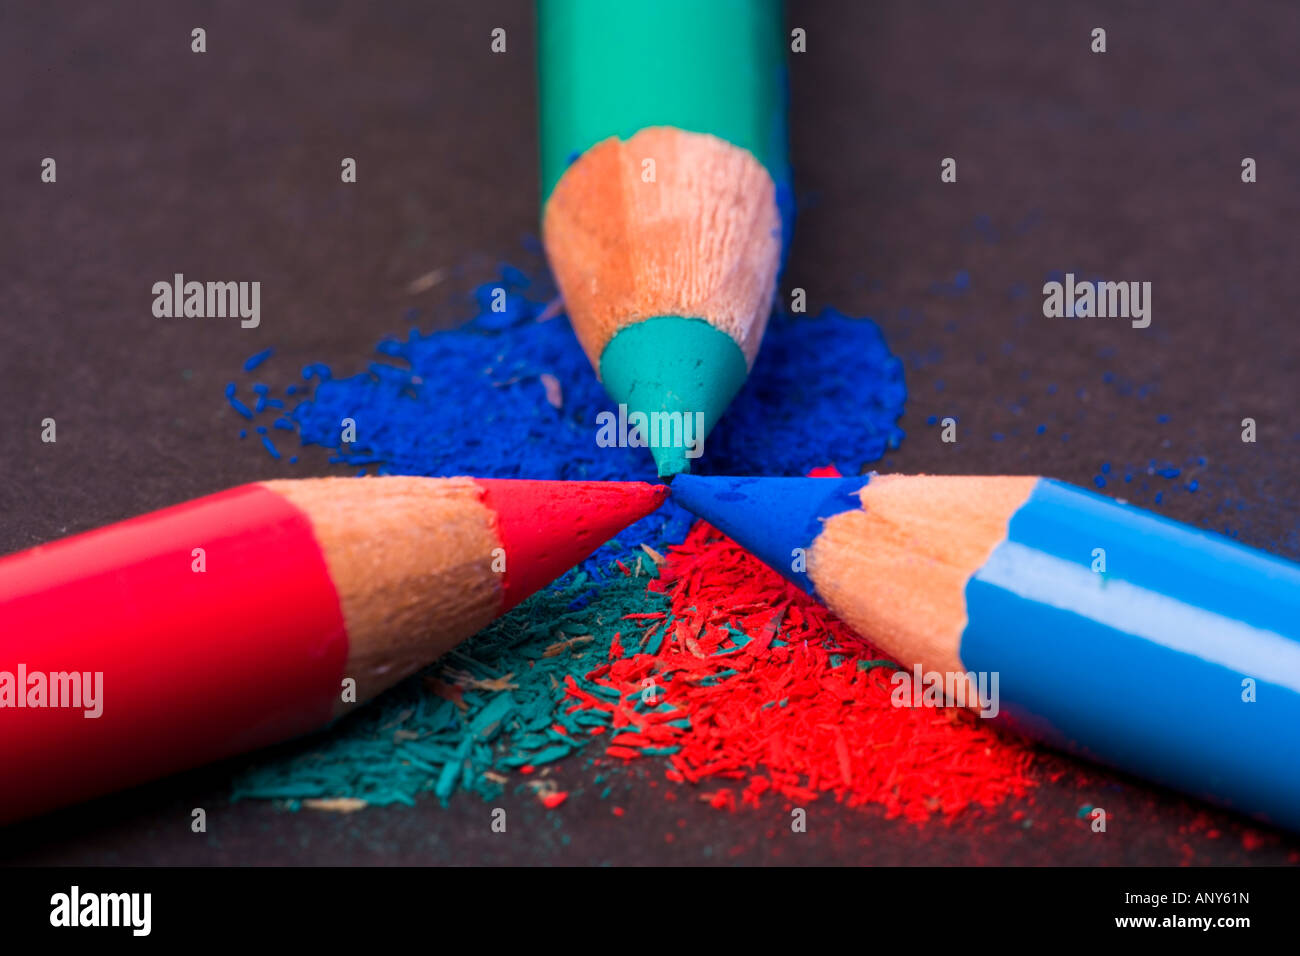 3 Pencils Red Green Blue Primary Colors Stock Photo 15622448 Alamy